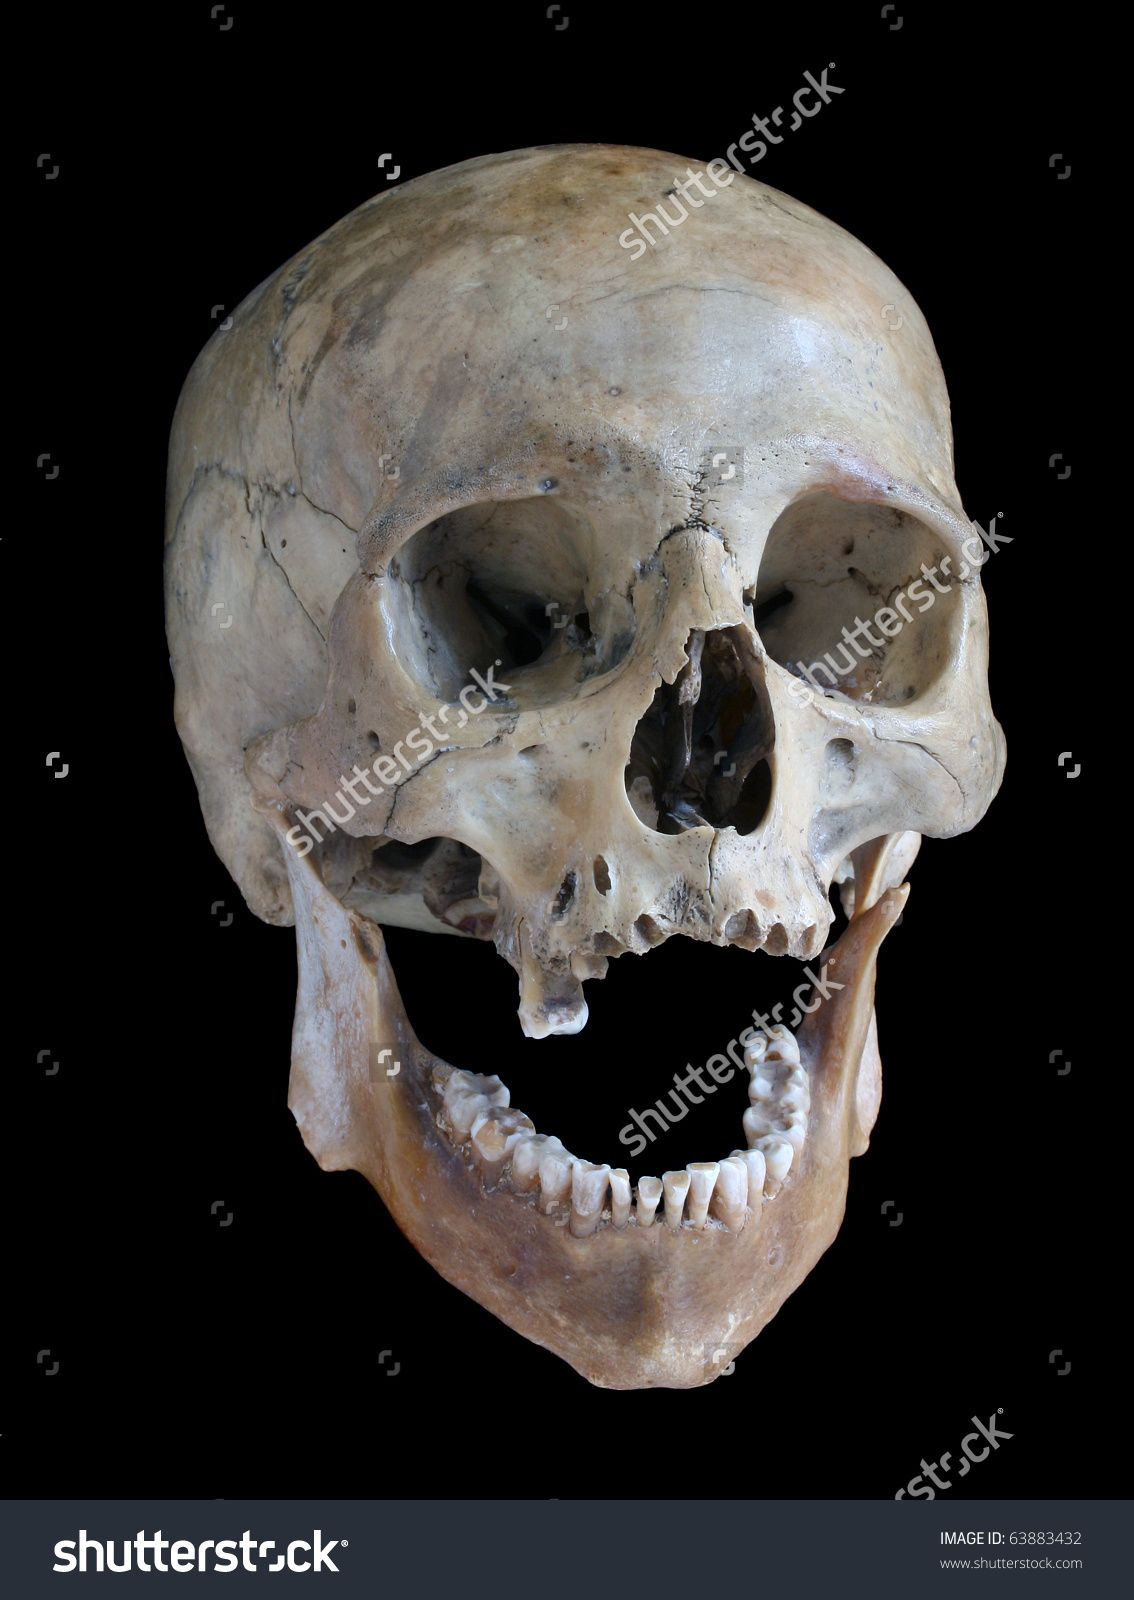 Human Skull Skull Of The Person On A Black Background Стоковые